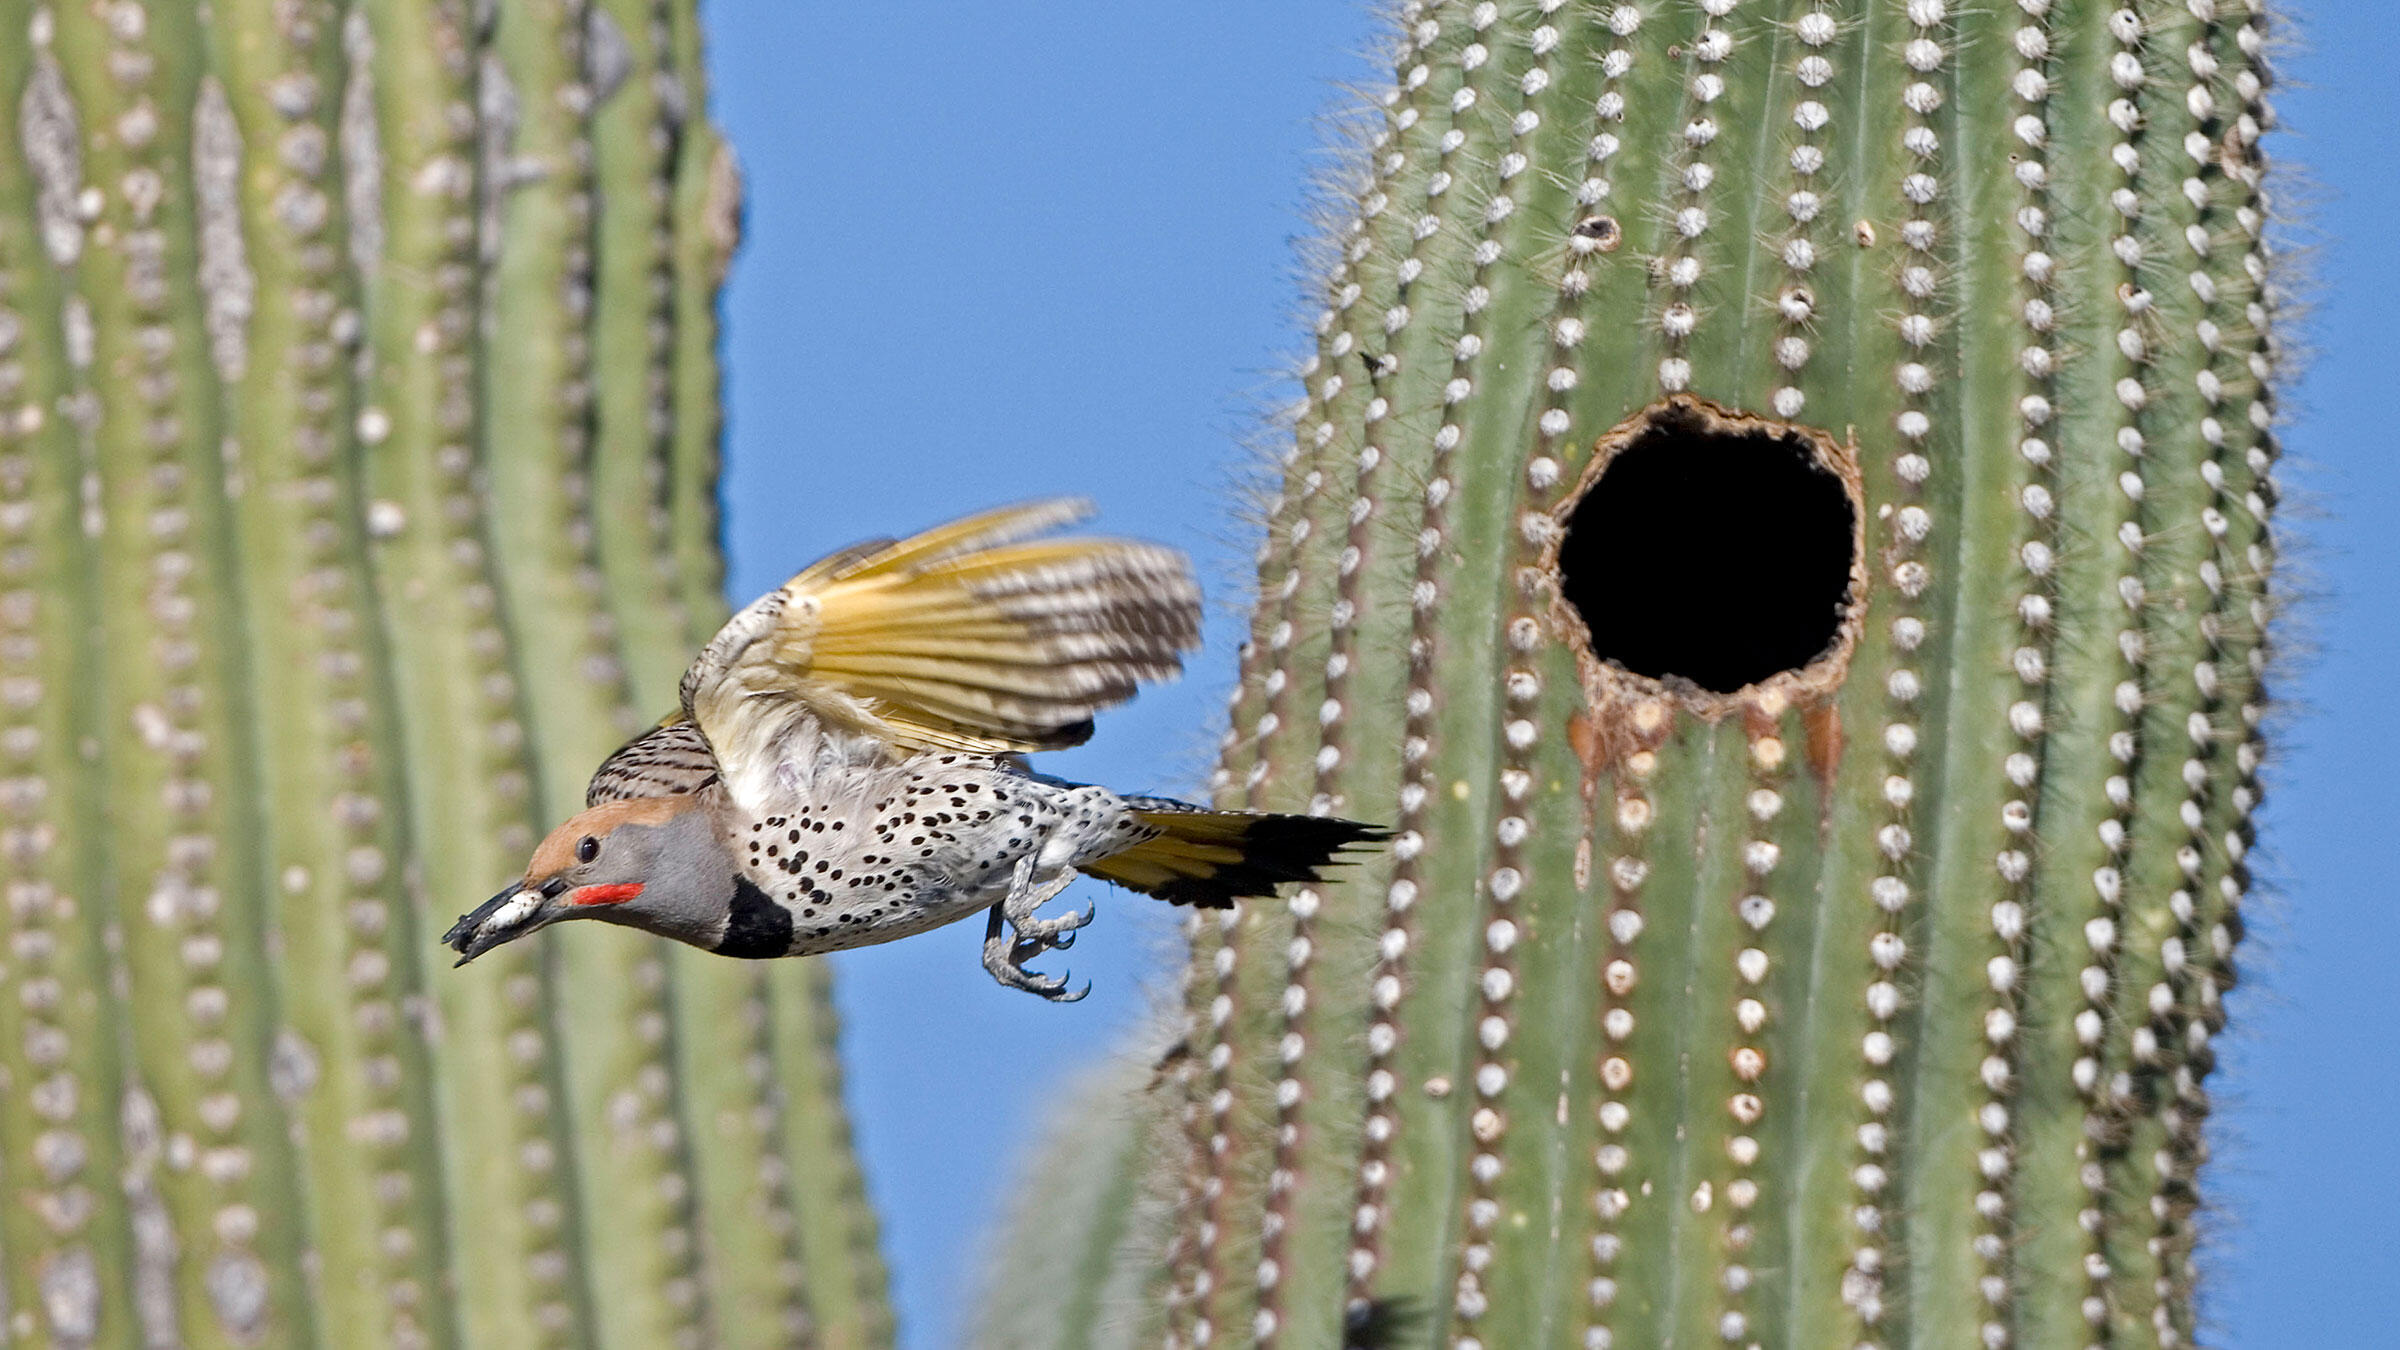 Gilded Flicker leaving the nest with a fecal sac. John Cancalosi/Alamy